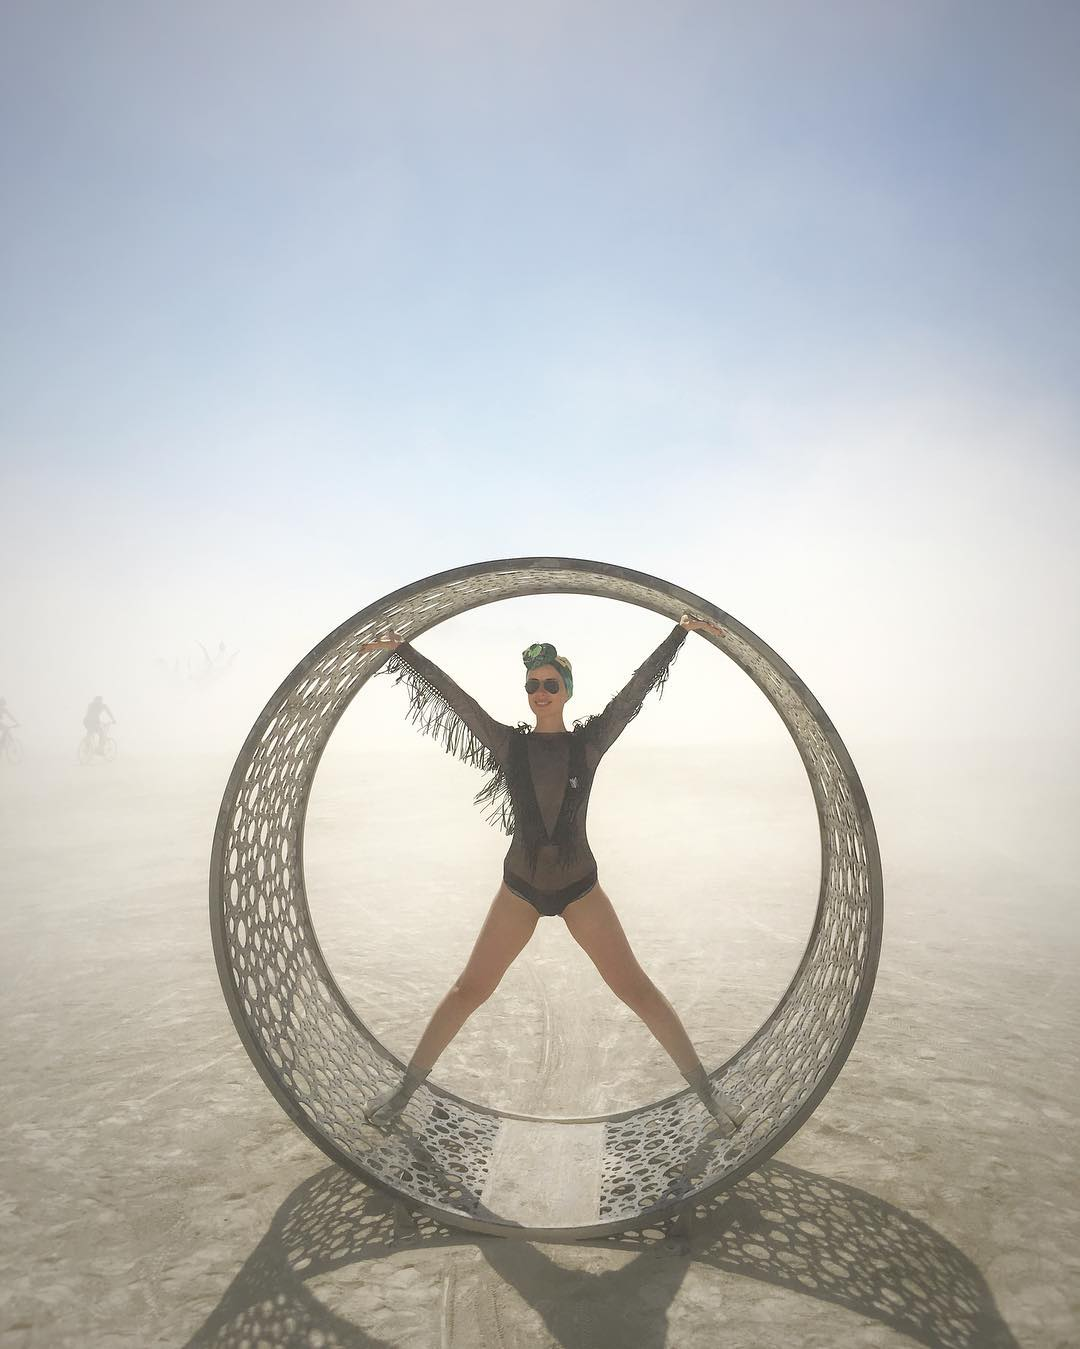 75 Stunning Photos from World Biggest And Craziest Festival - Burning Man 2017